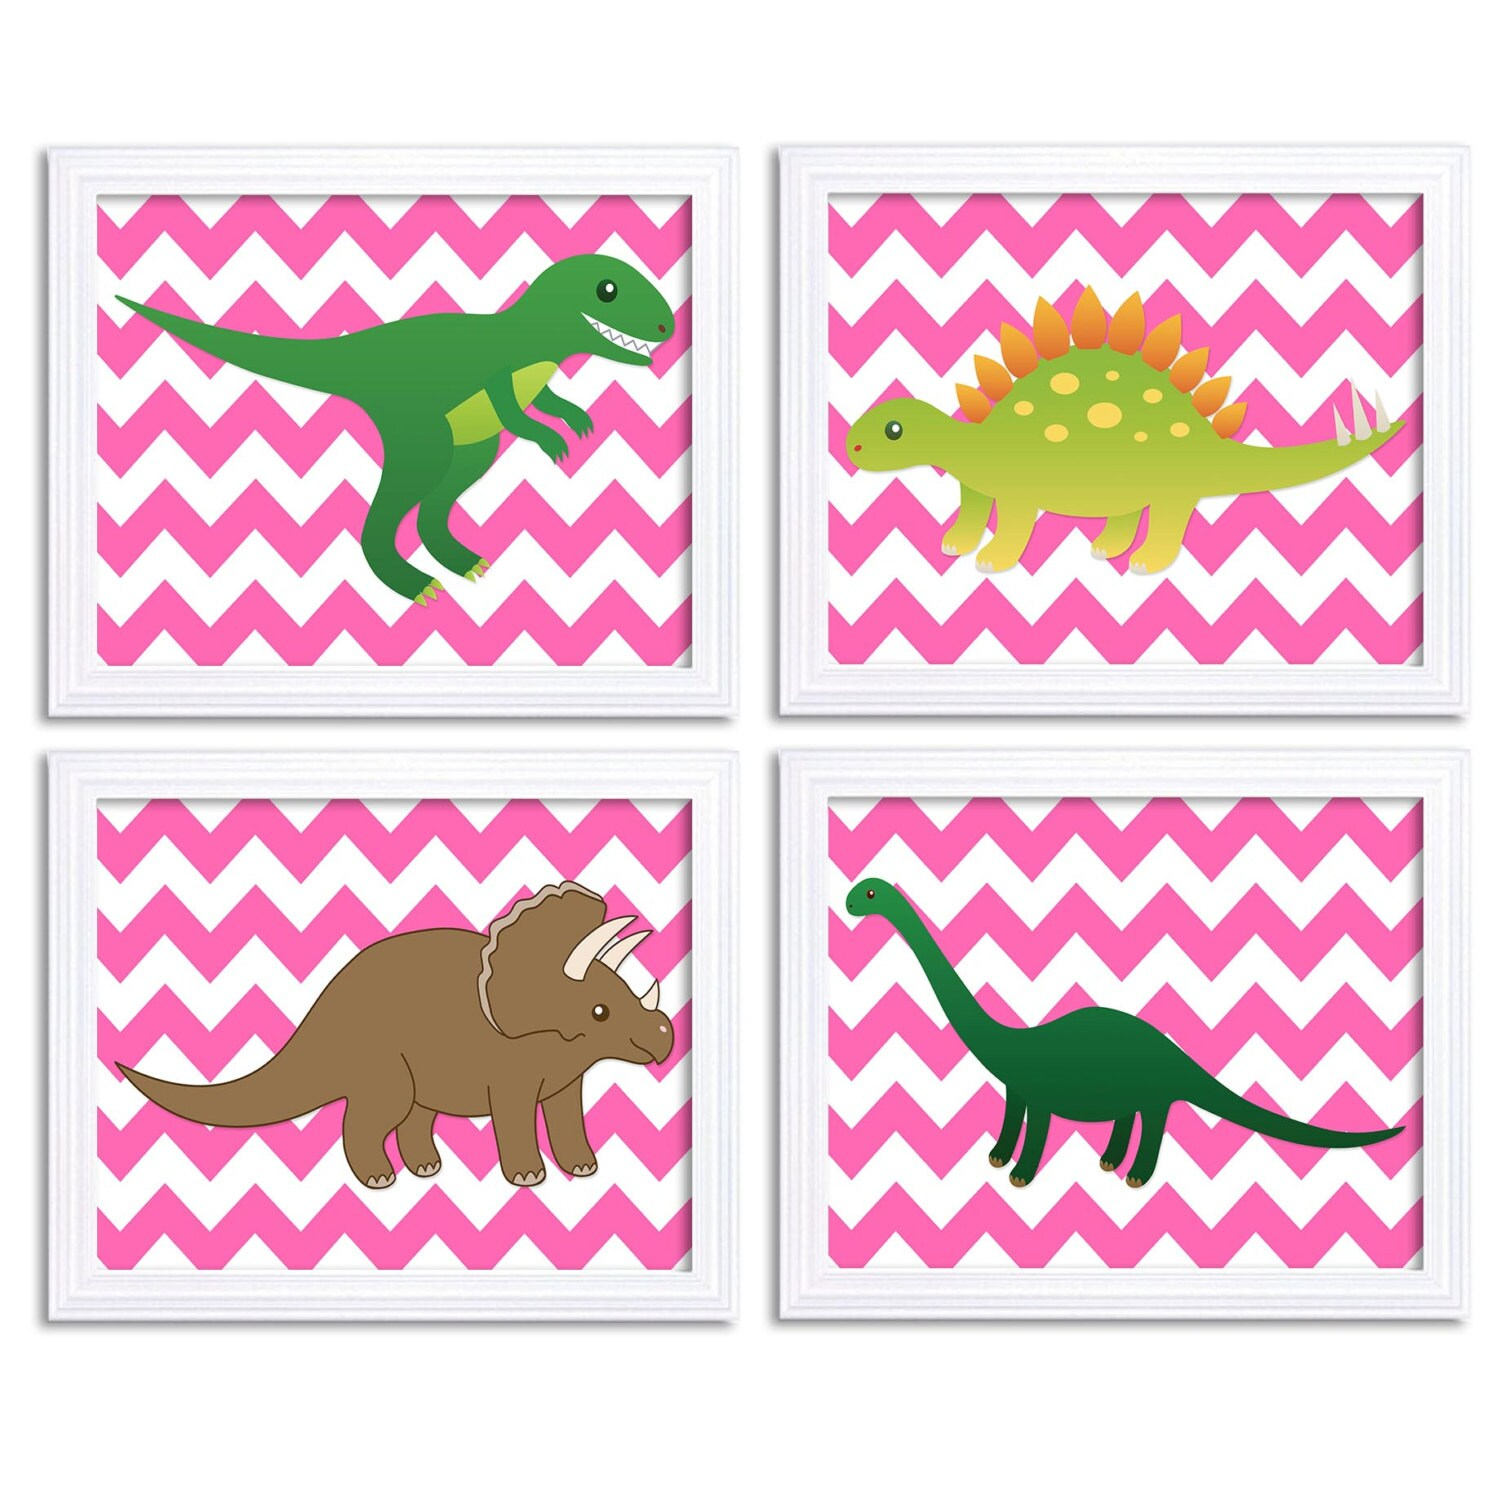 Dinosaur Nursery Art Chevron Nursery Print Set of 4 Dinosaurs Hot Pink Girl Baby Child Kids Room Chi